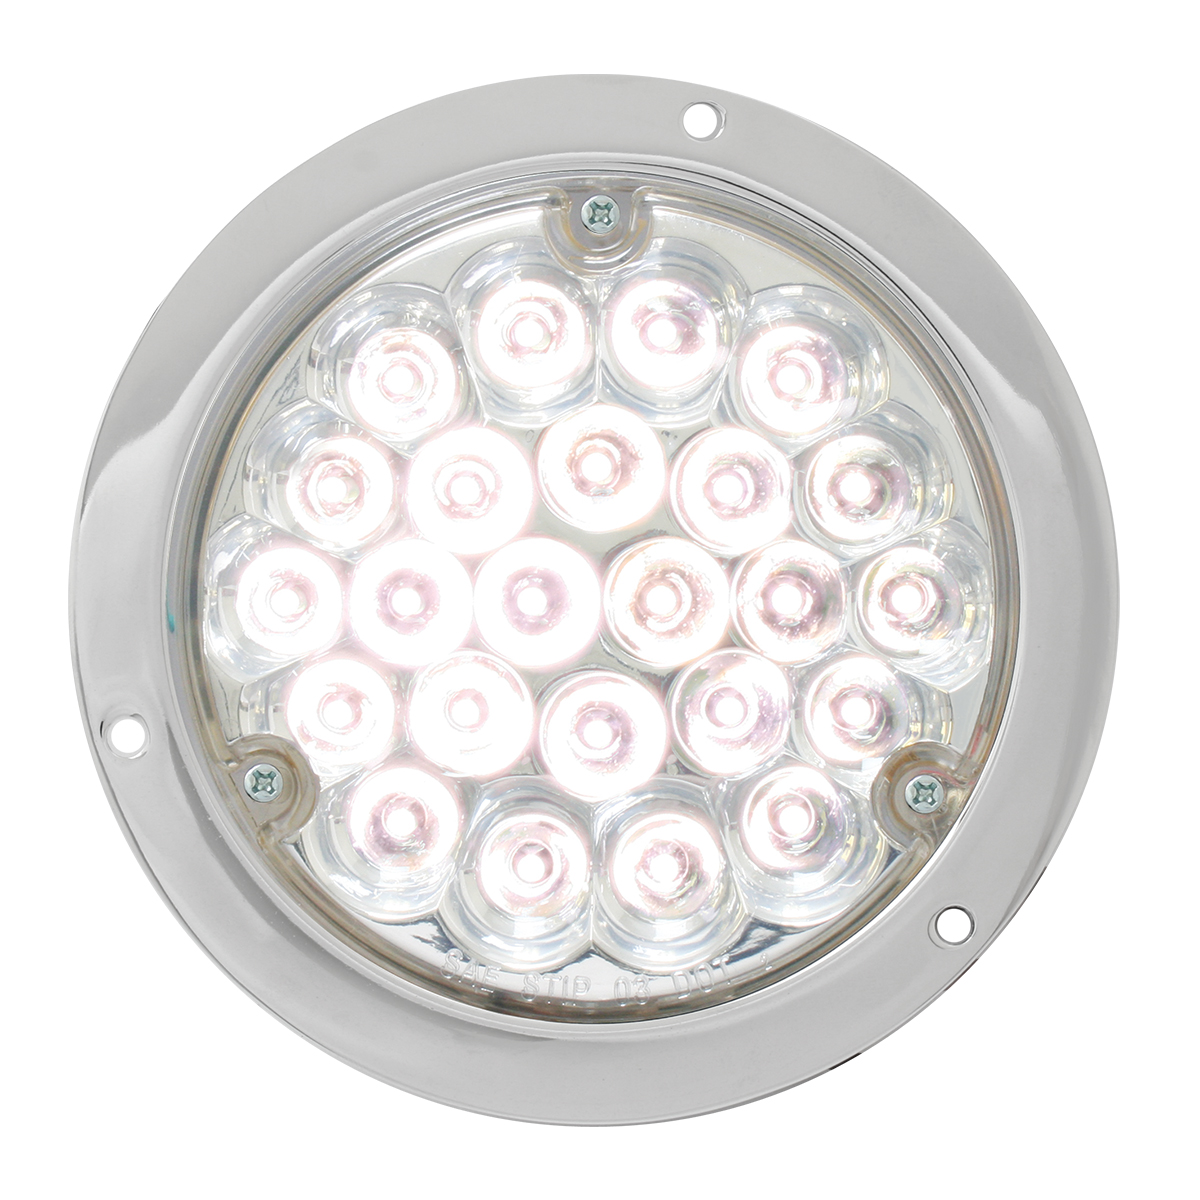 """87584 4"""" Pearl LED Light in White/Clear w/ Chrome Housing"""